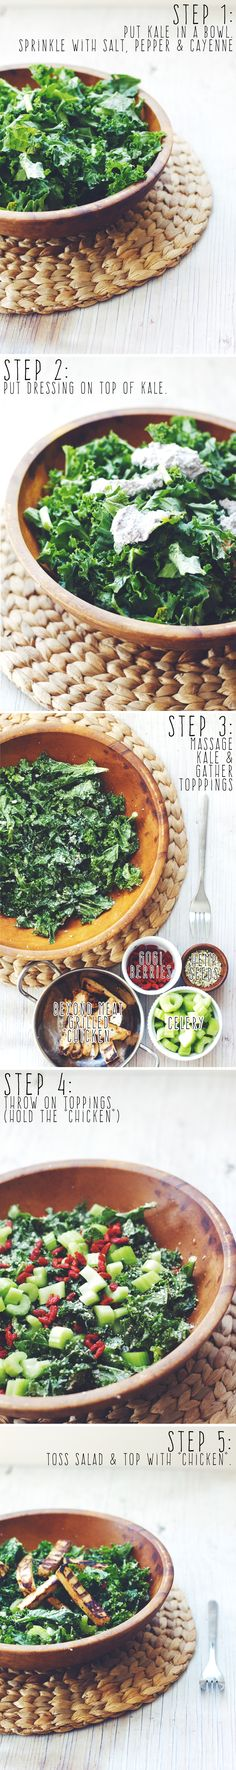 (Basic)ally Perfect Kale Salad (gf/v) ||| Brewing Happiness